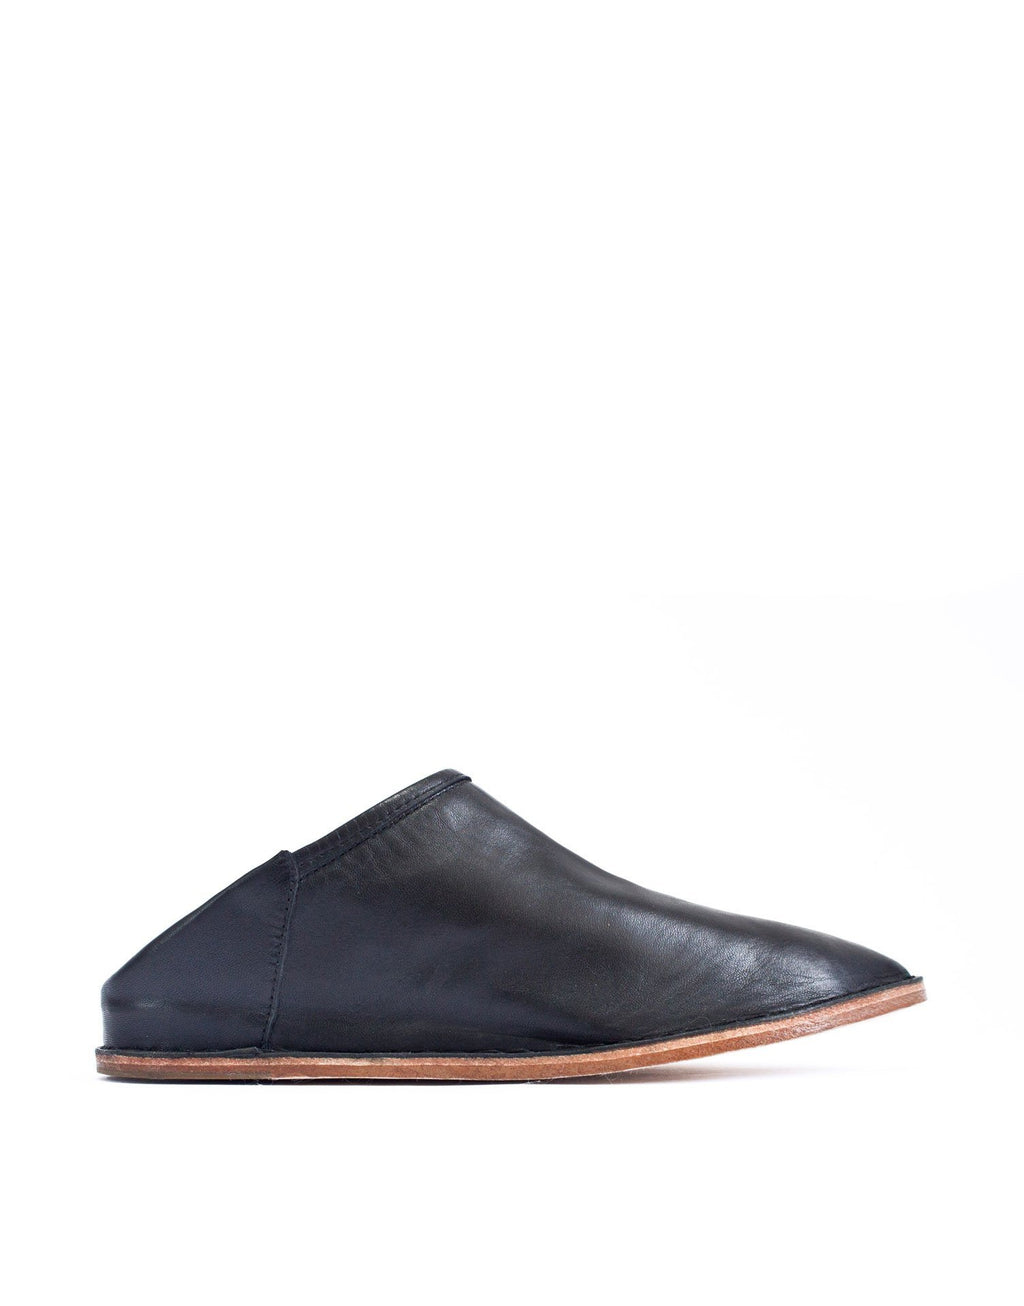 Classic minimal black leather slip on leather slipper shoe by designer Georgina Goodman